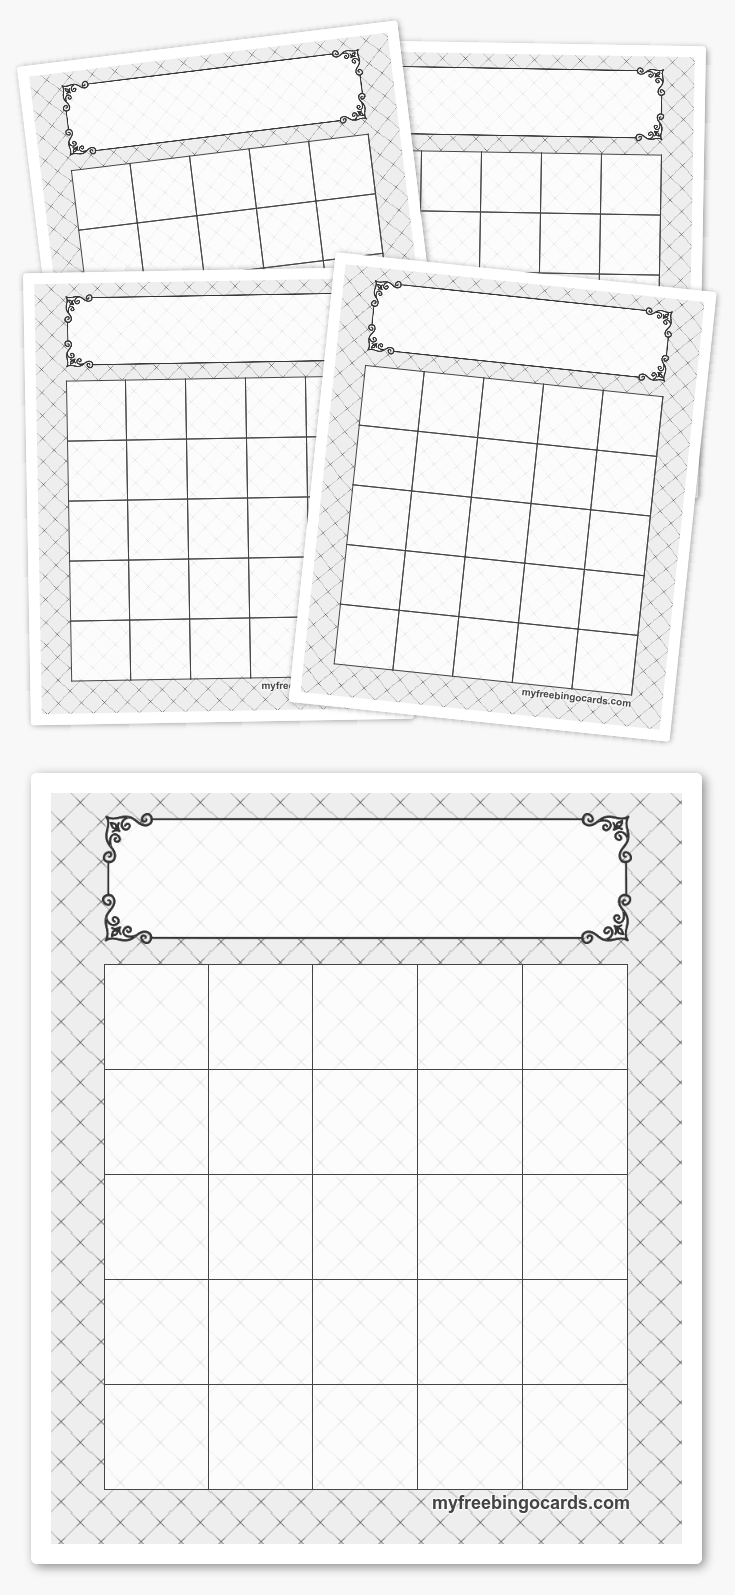 5x5 bingo templates cards